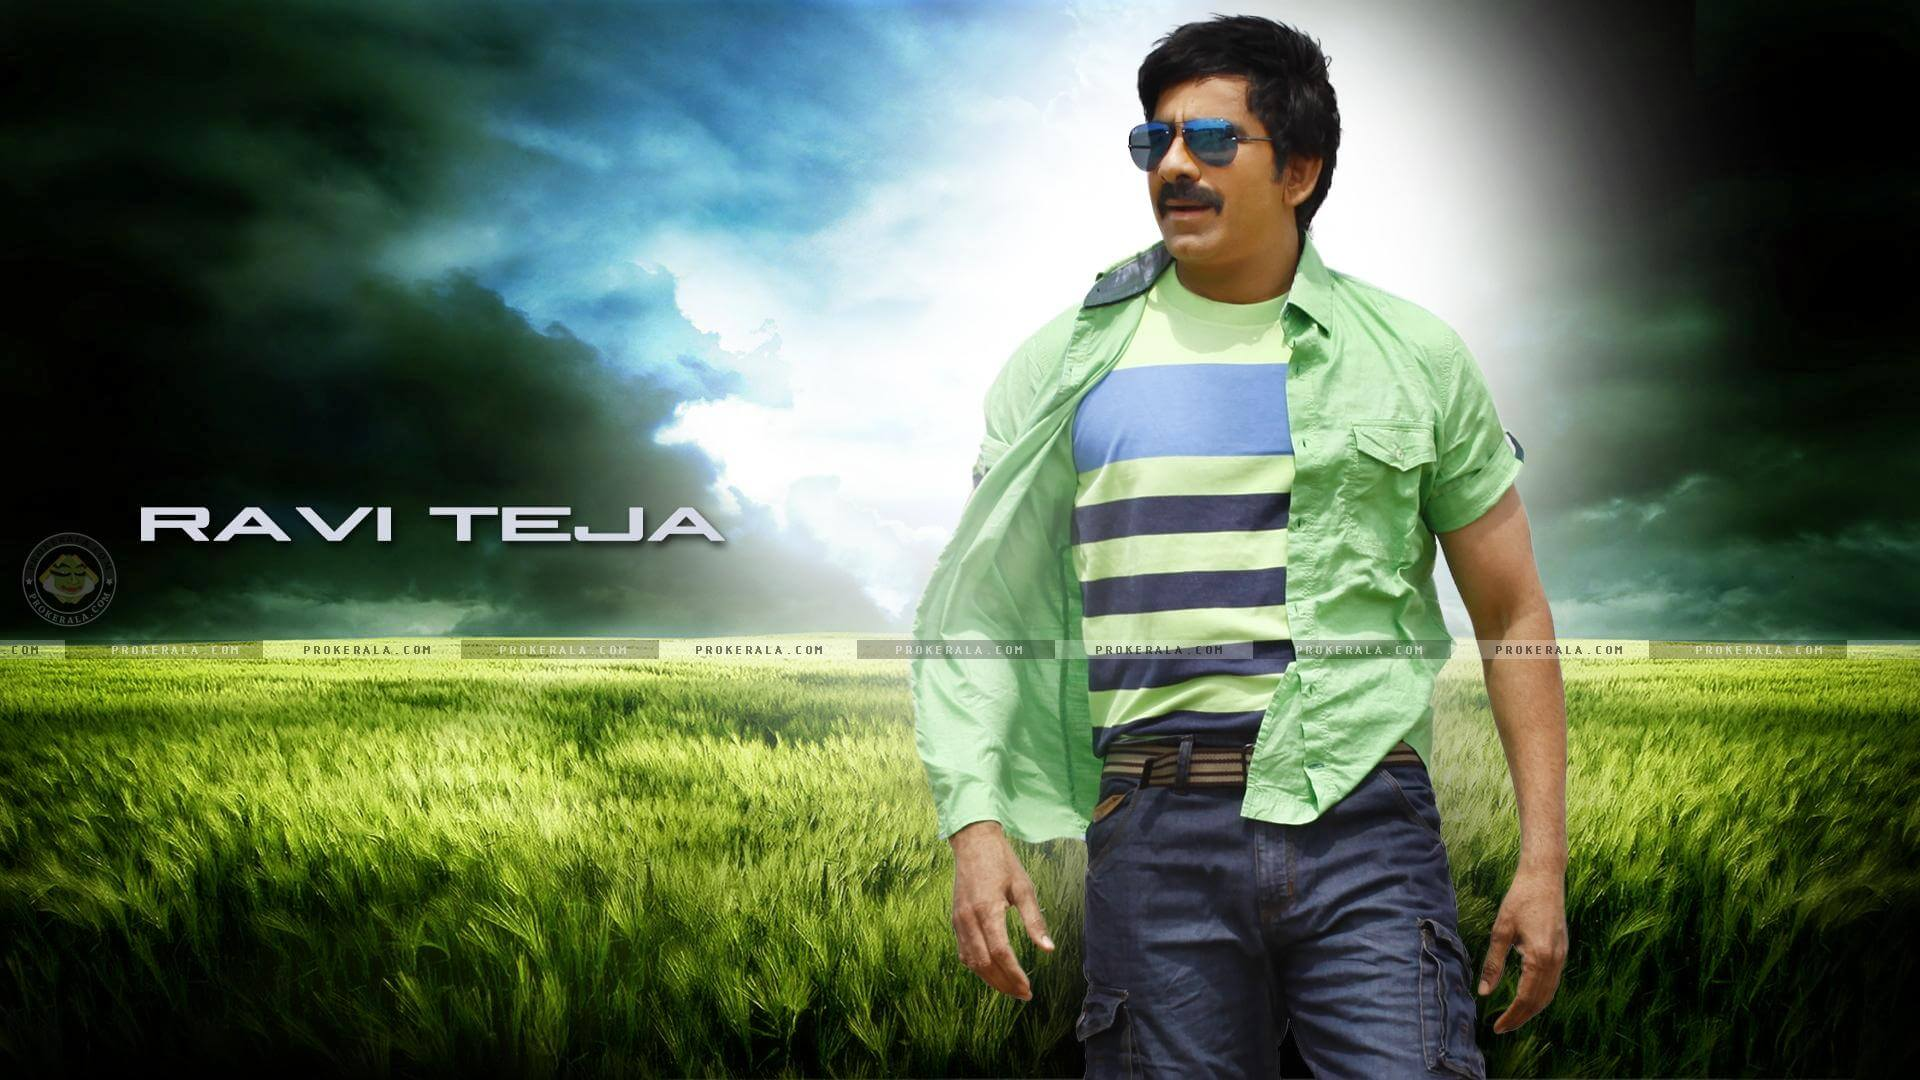 Ravi Teja Movie, Photos(images), Date Of Birth, Family, Brother, Height, Biography, Net Worth, Age, Wife, Details, Education, Instagram, Twitter, Wiki, Imdb, Facebook, Hairstyle, Youtube (10)